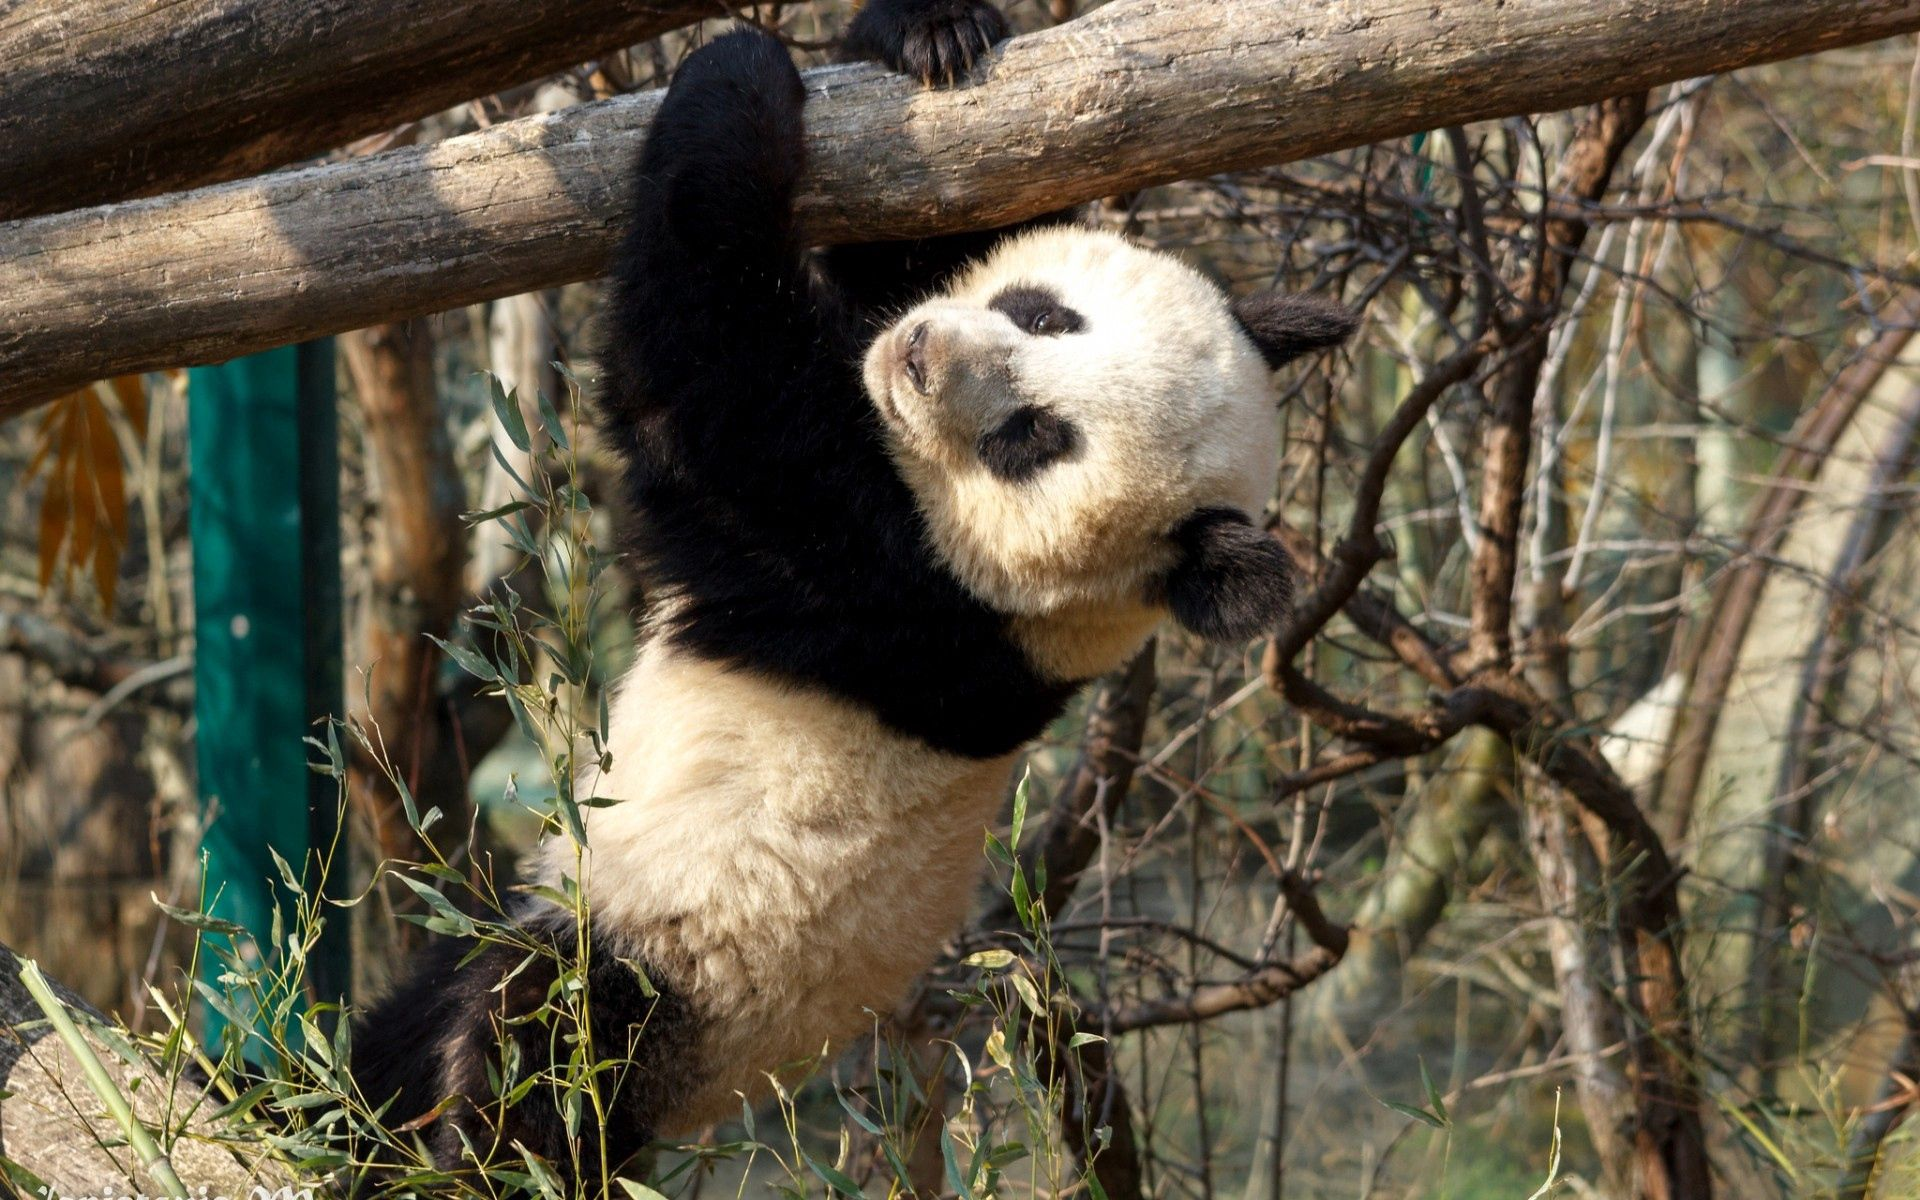 112827 download wallpaper Animals, Panda, Branches, Hang, Teddy Bear, Bear Cub screensavers and pictures for free